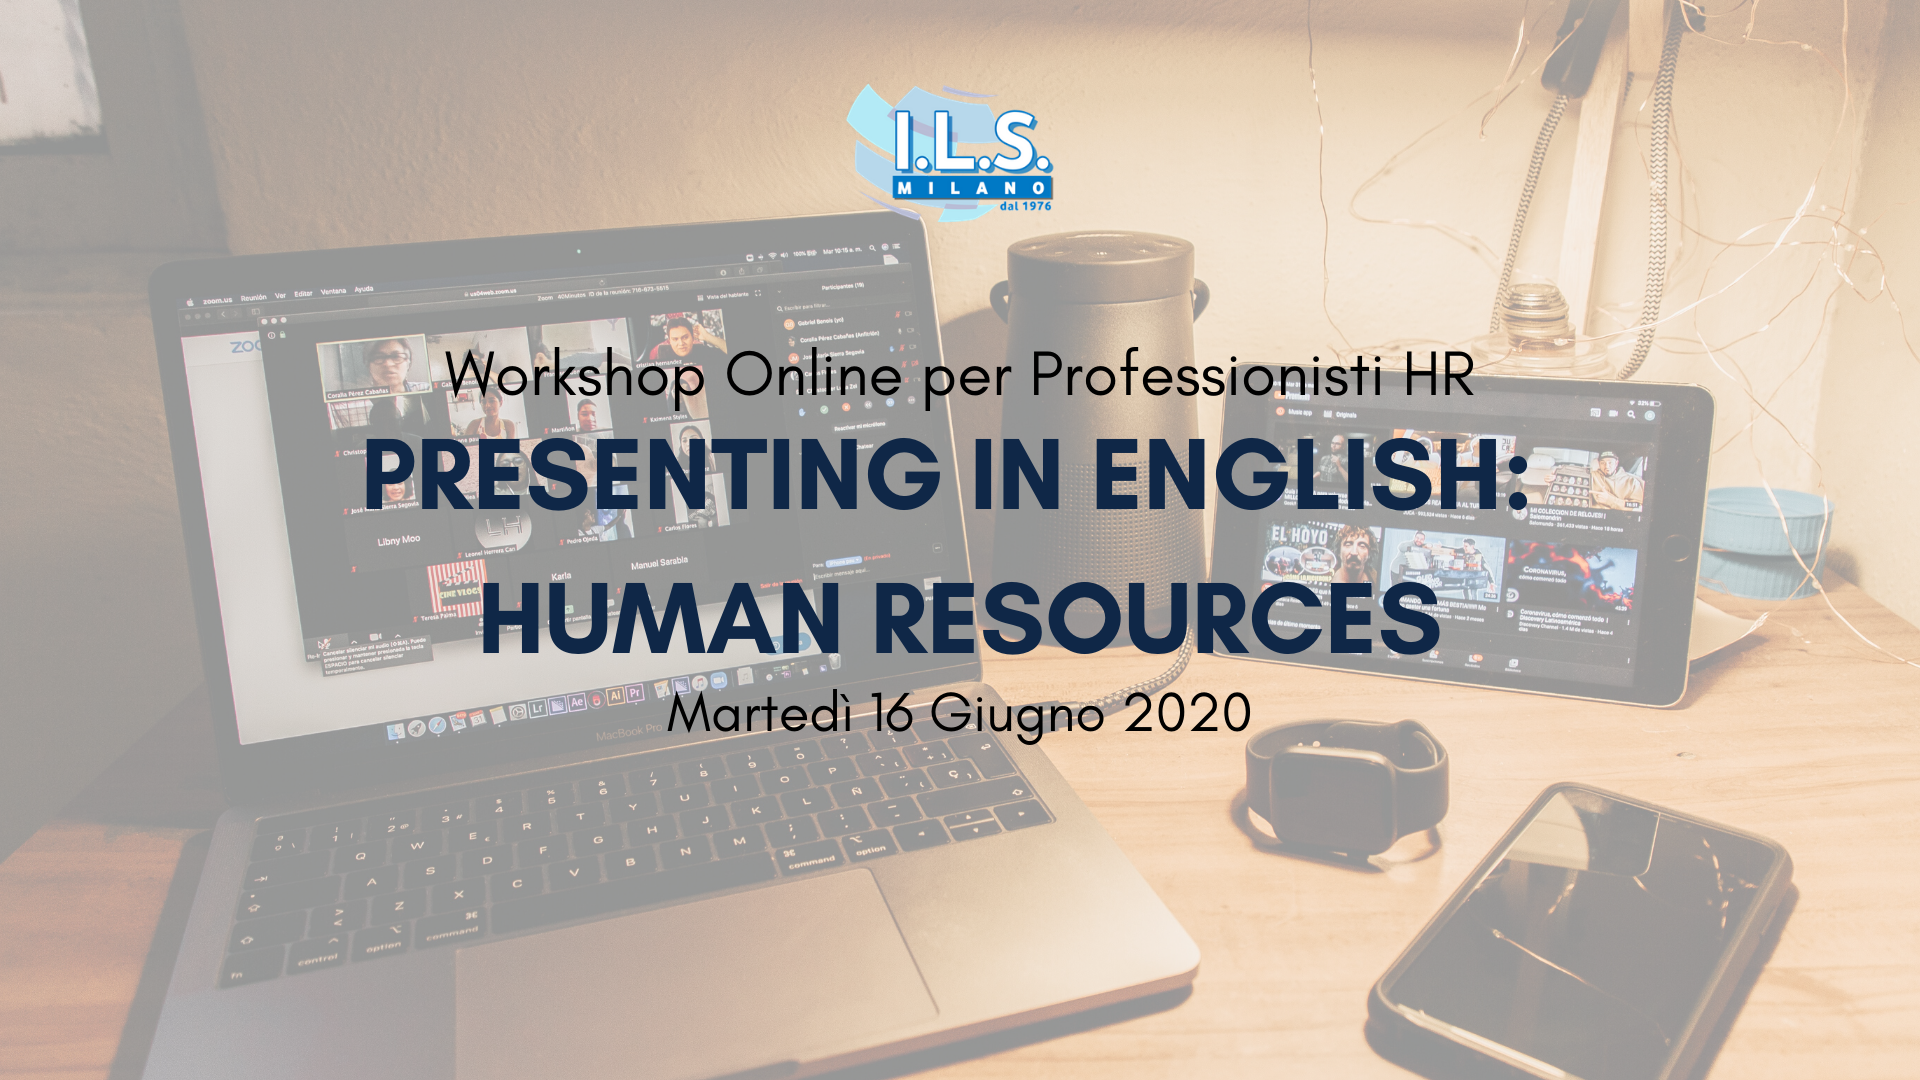 hr workshop online inglese ils milano risorse umane human resources eventi hr eventbrite milano